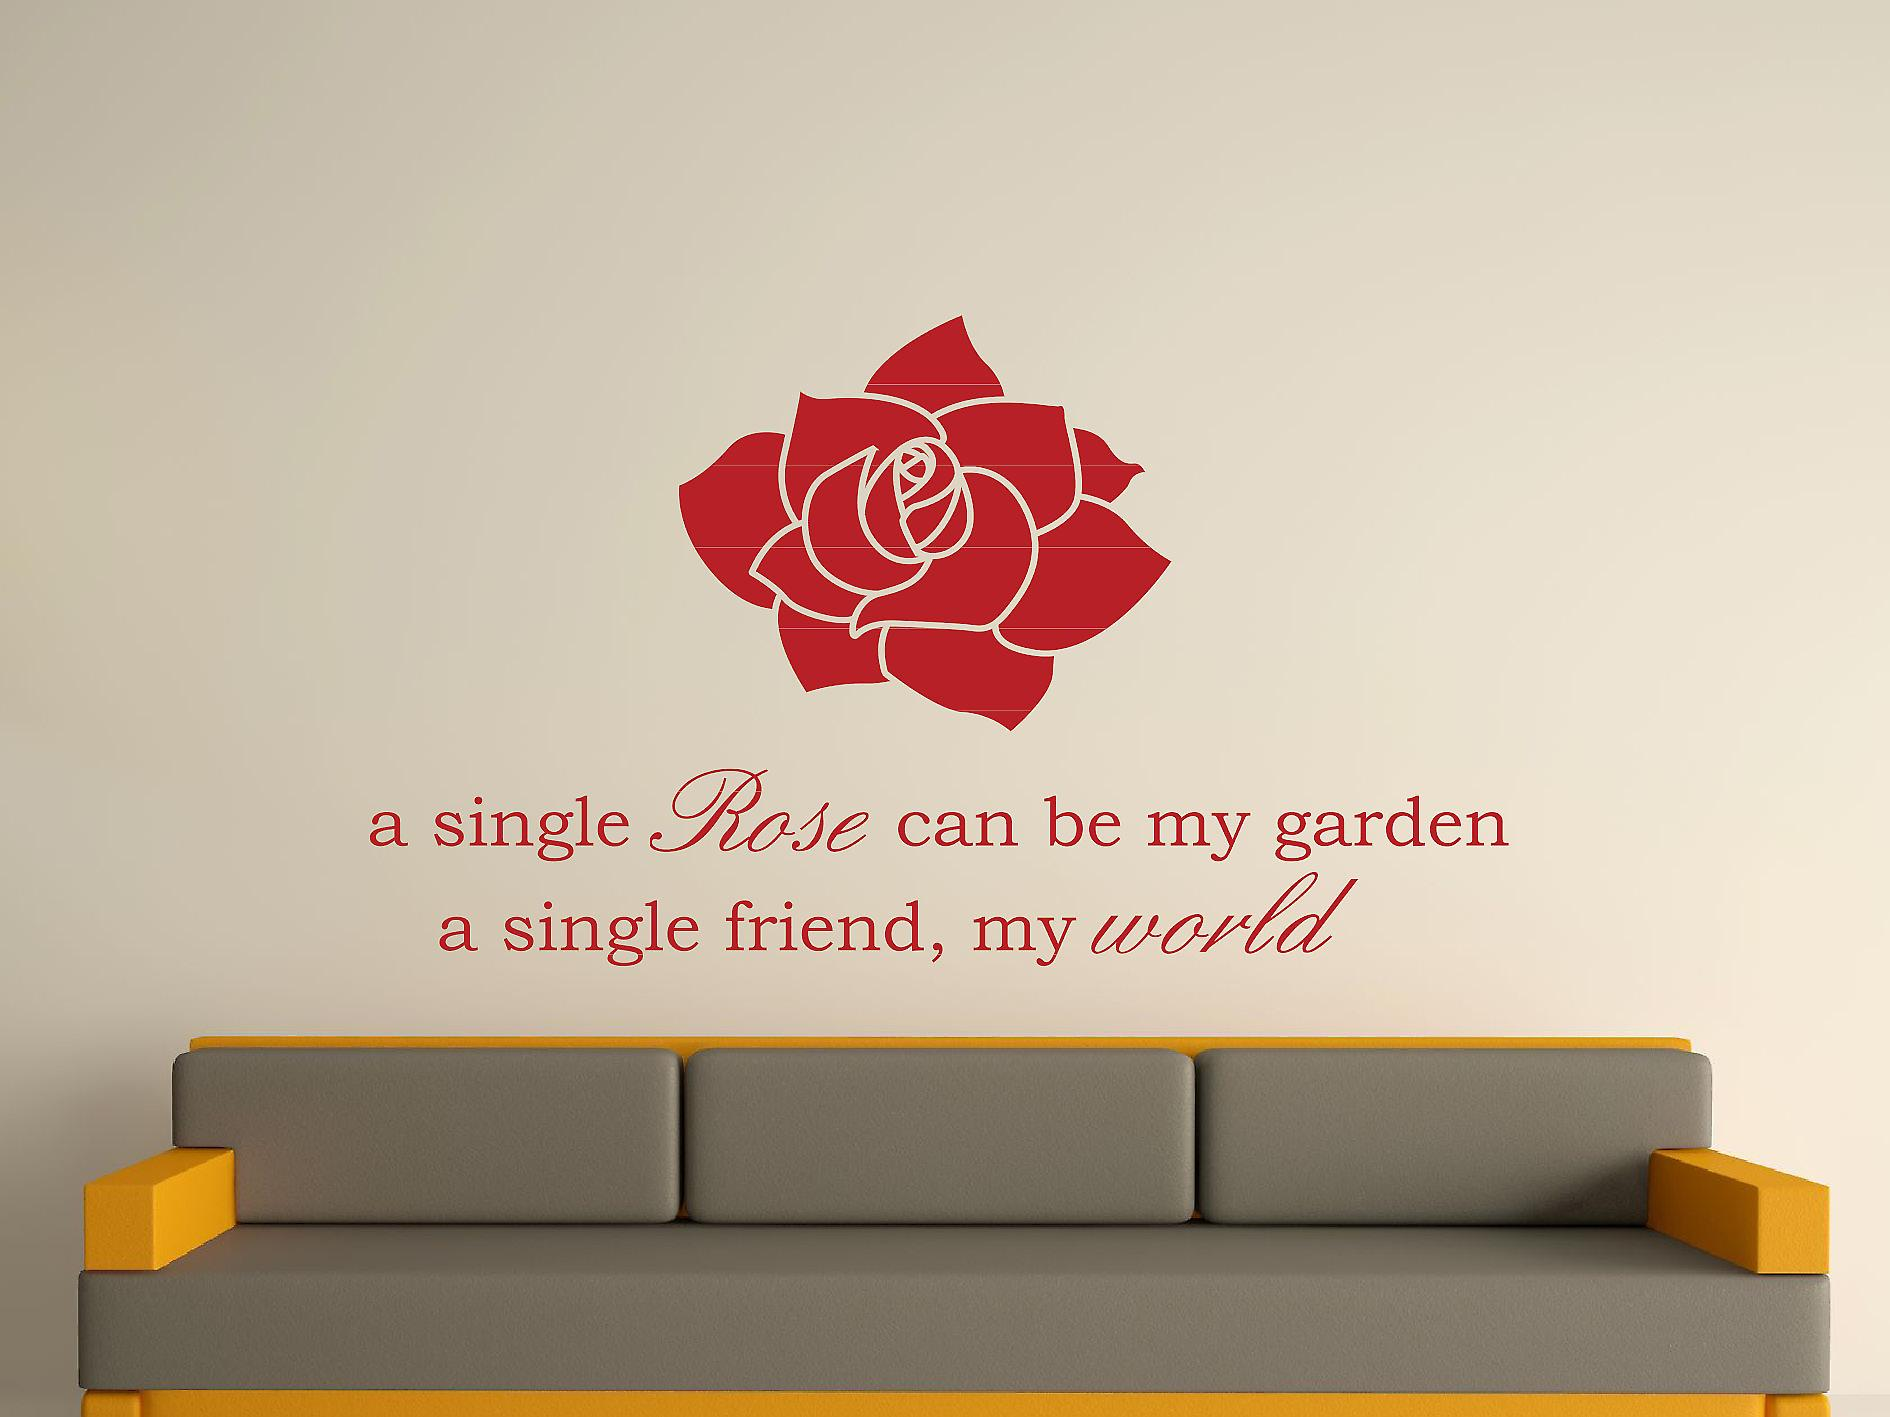 Rose simple Wall Art autocollants - rouge foncé